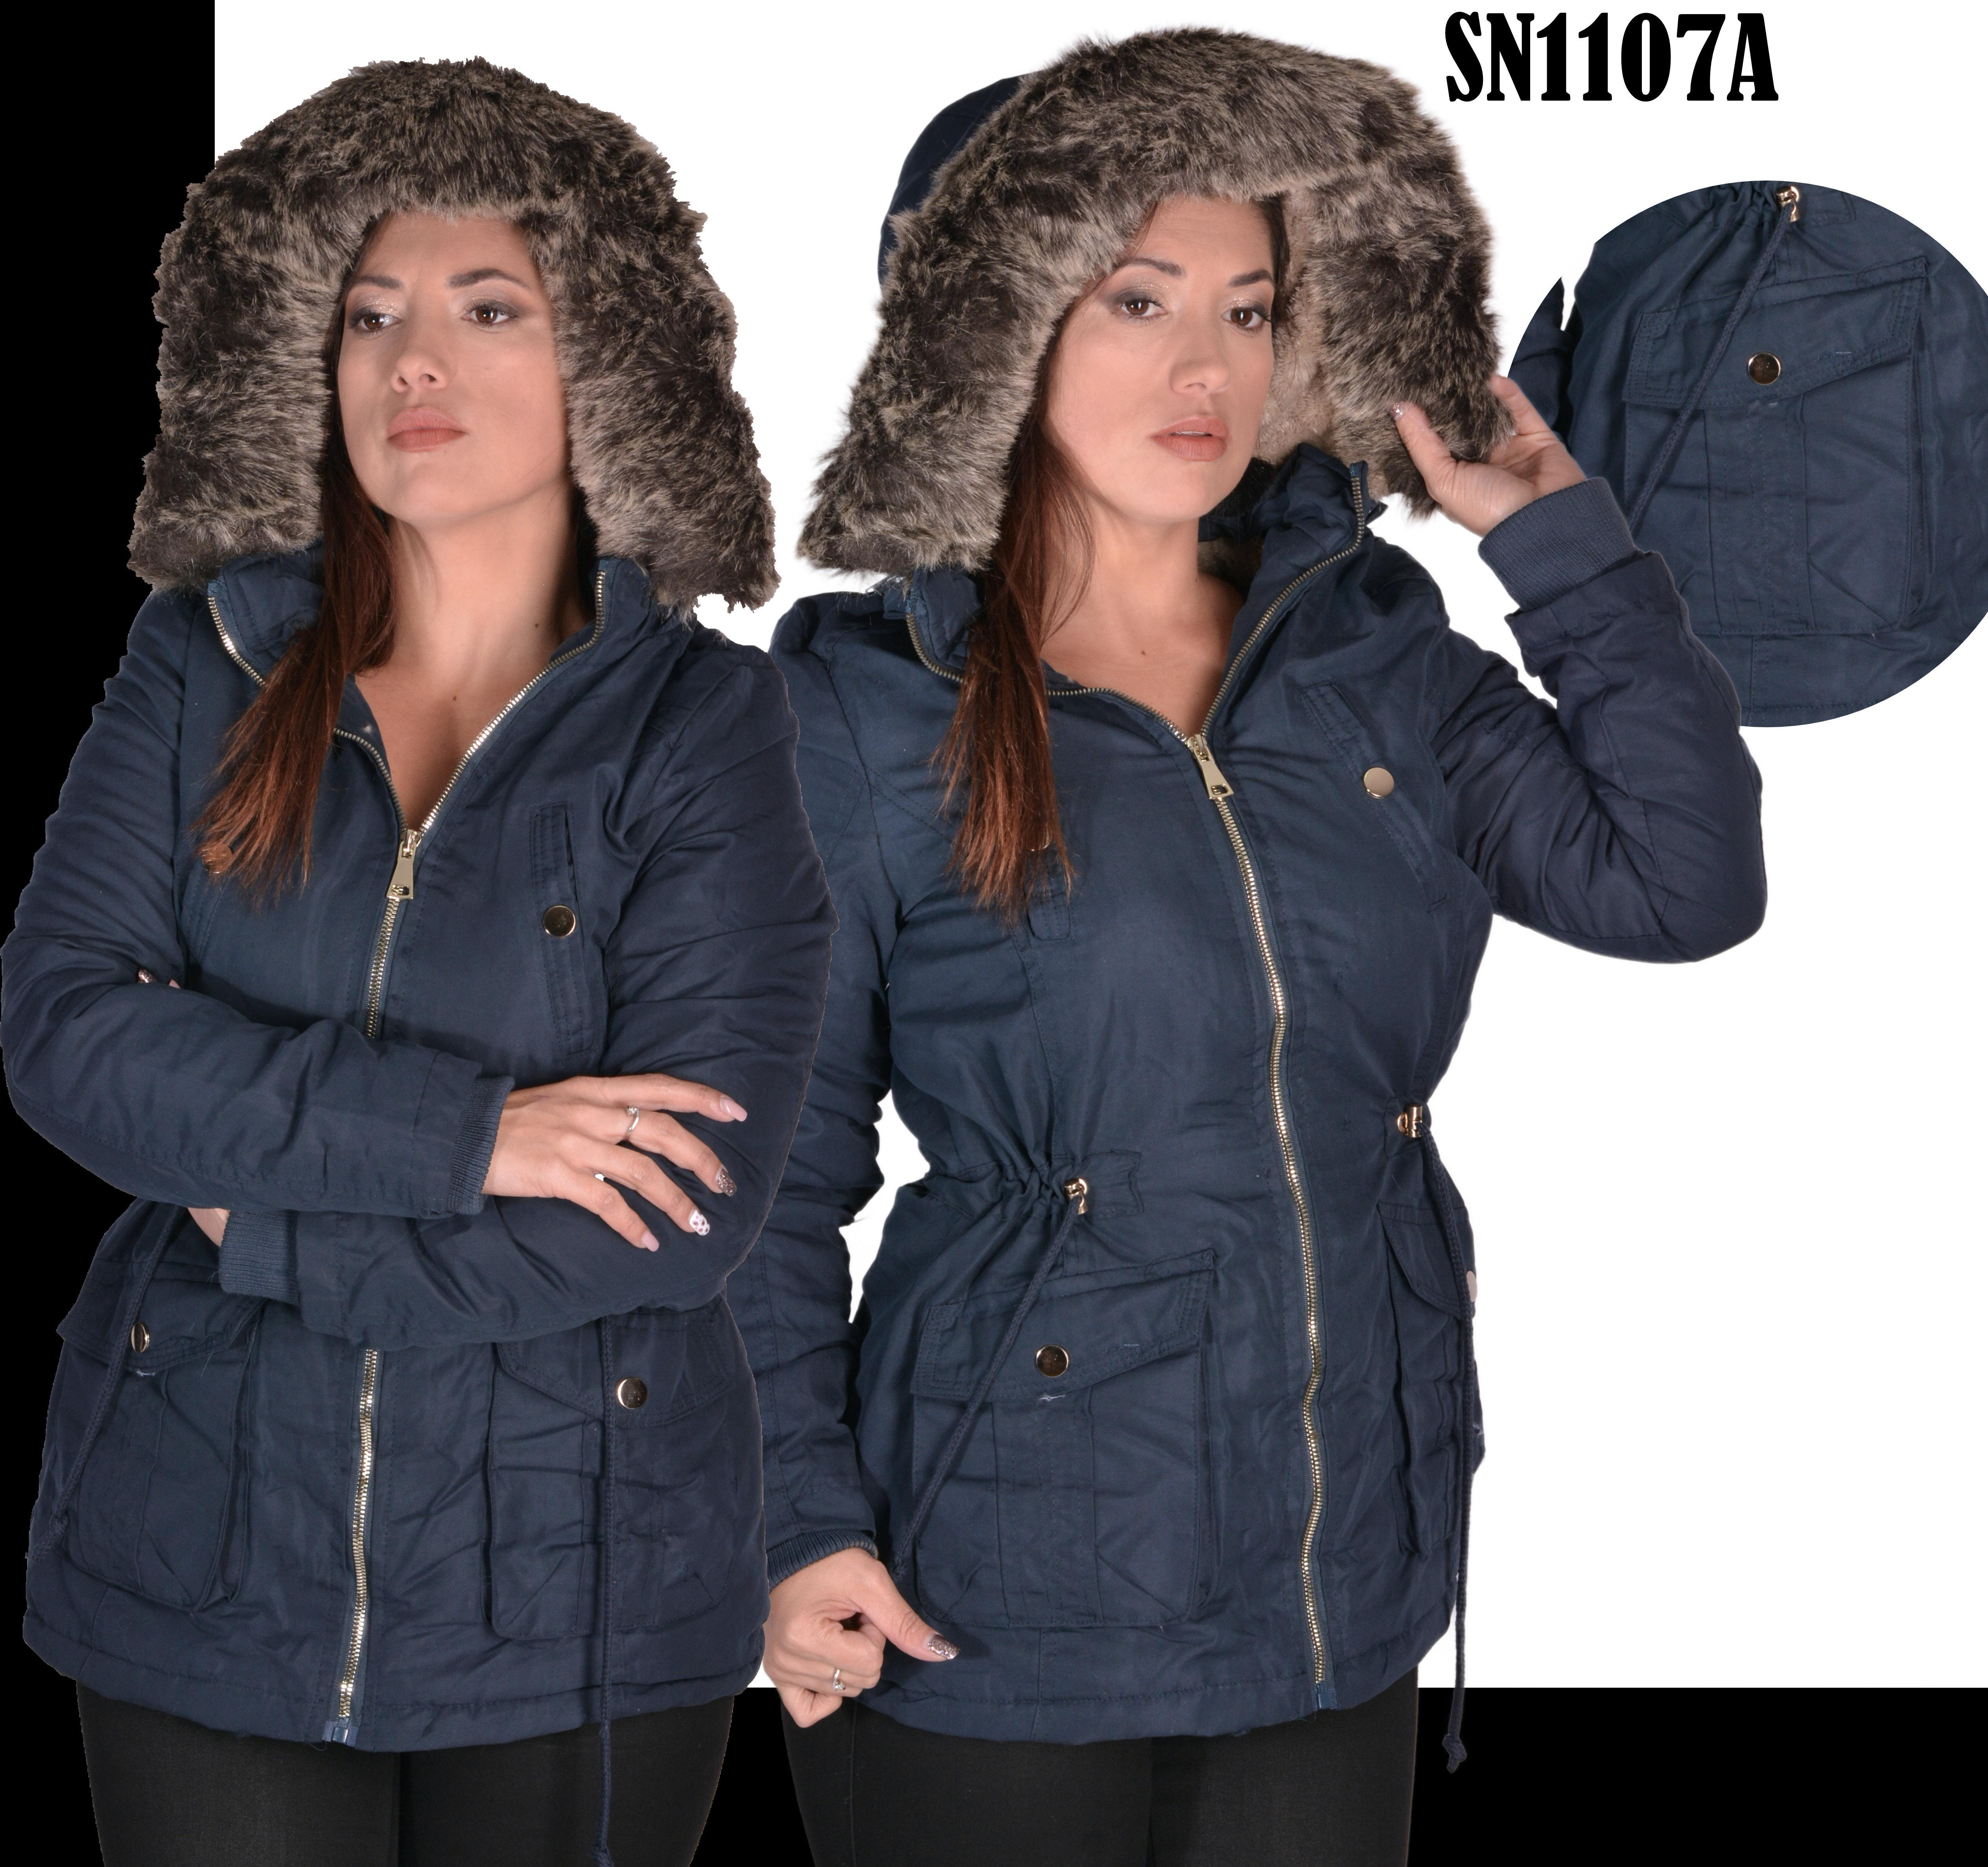 Jacket With Warm Polar Fleece Cap with pockets and zippers dark blue.